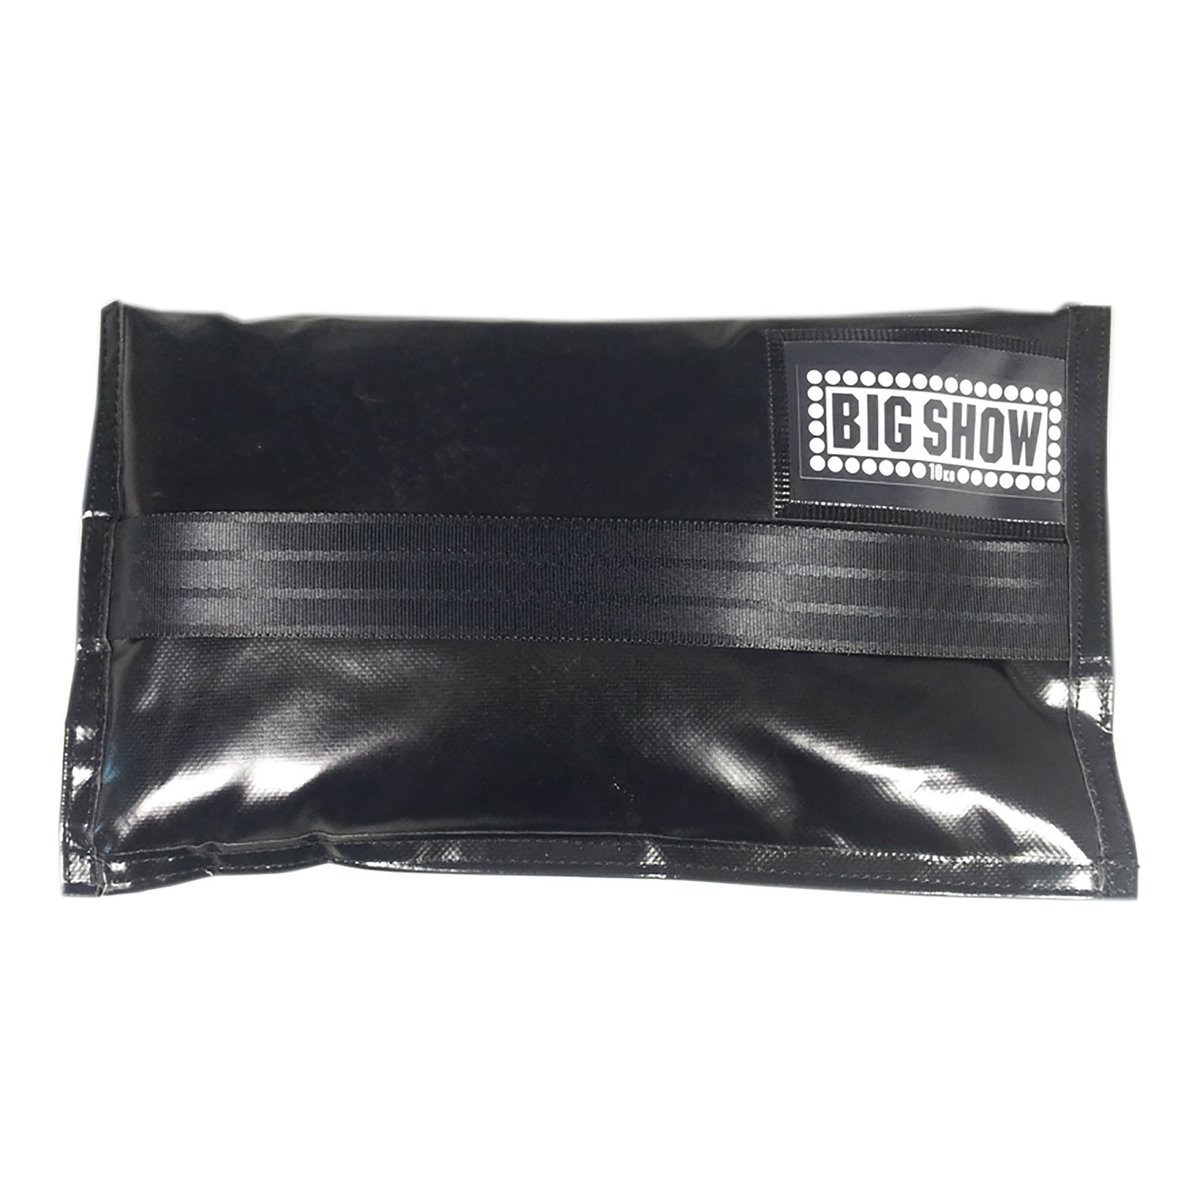 Big Show Shot Bag (10 kilograms) Image